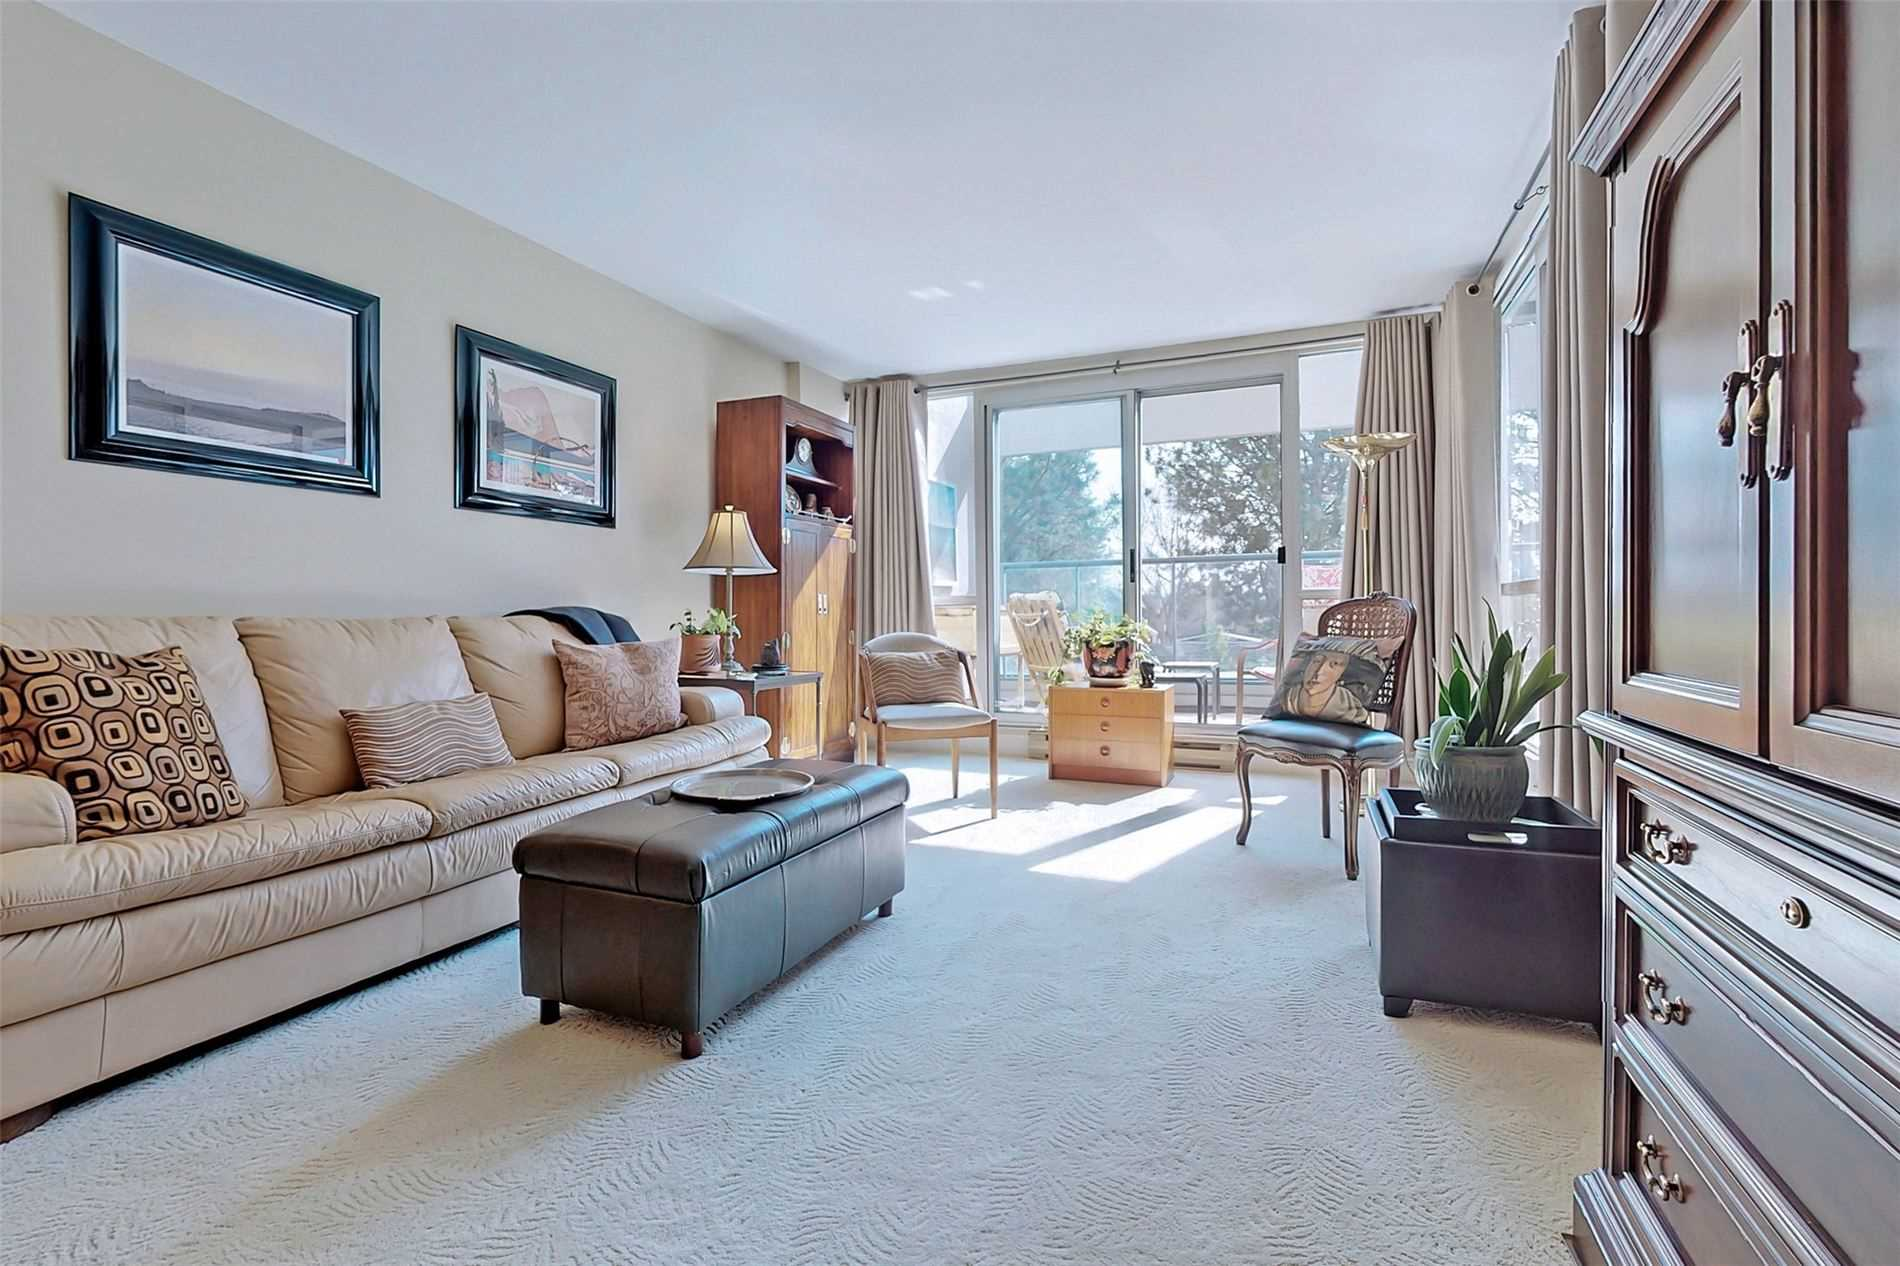 Image 36 of 40 showing inside of 2 Bedroom Condo Apt 2-Storey for Sale at 25 Cumberland Lane Unit# 105, Ajax L1S7K1